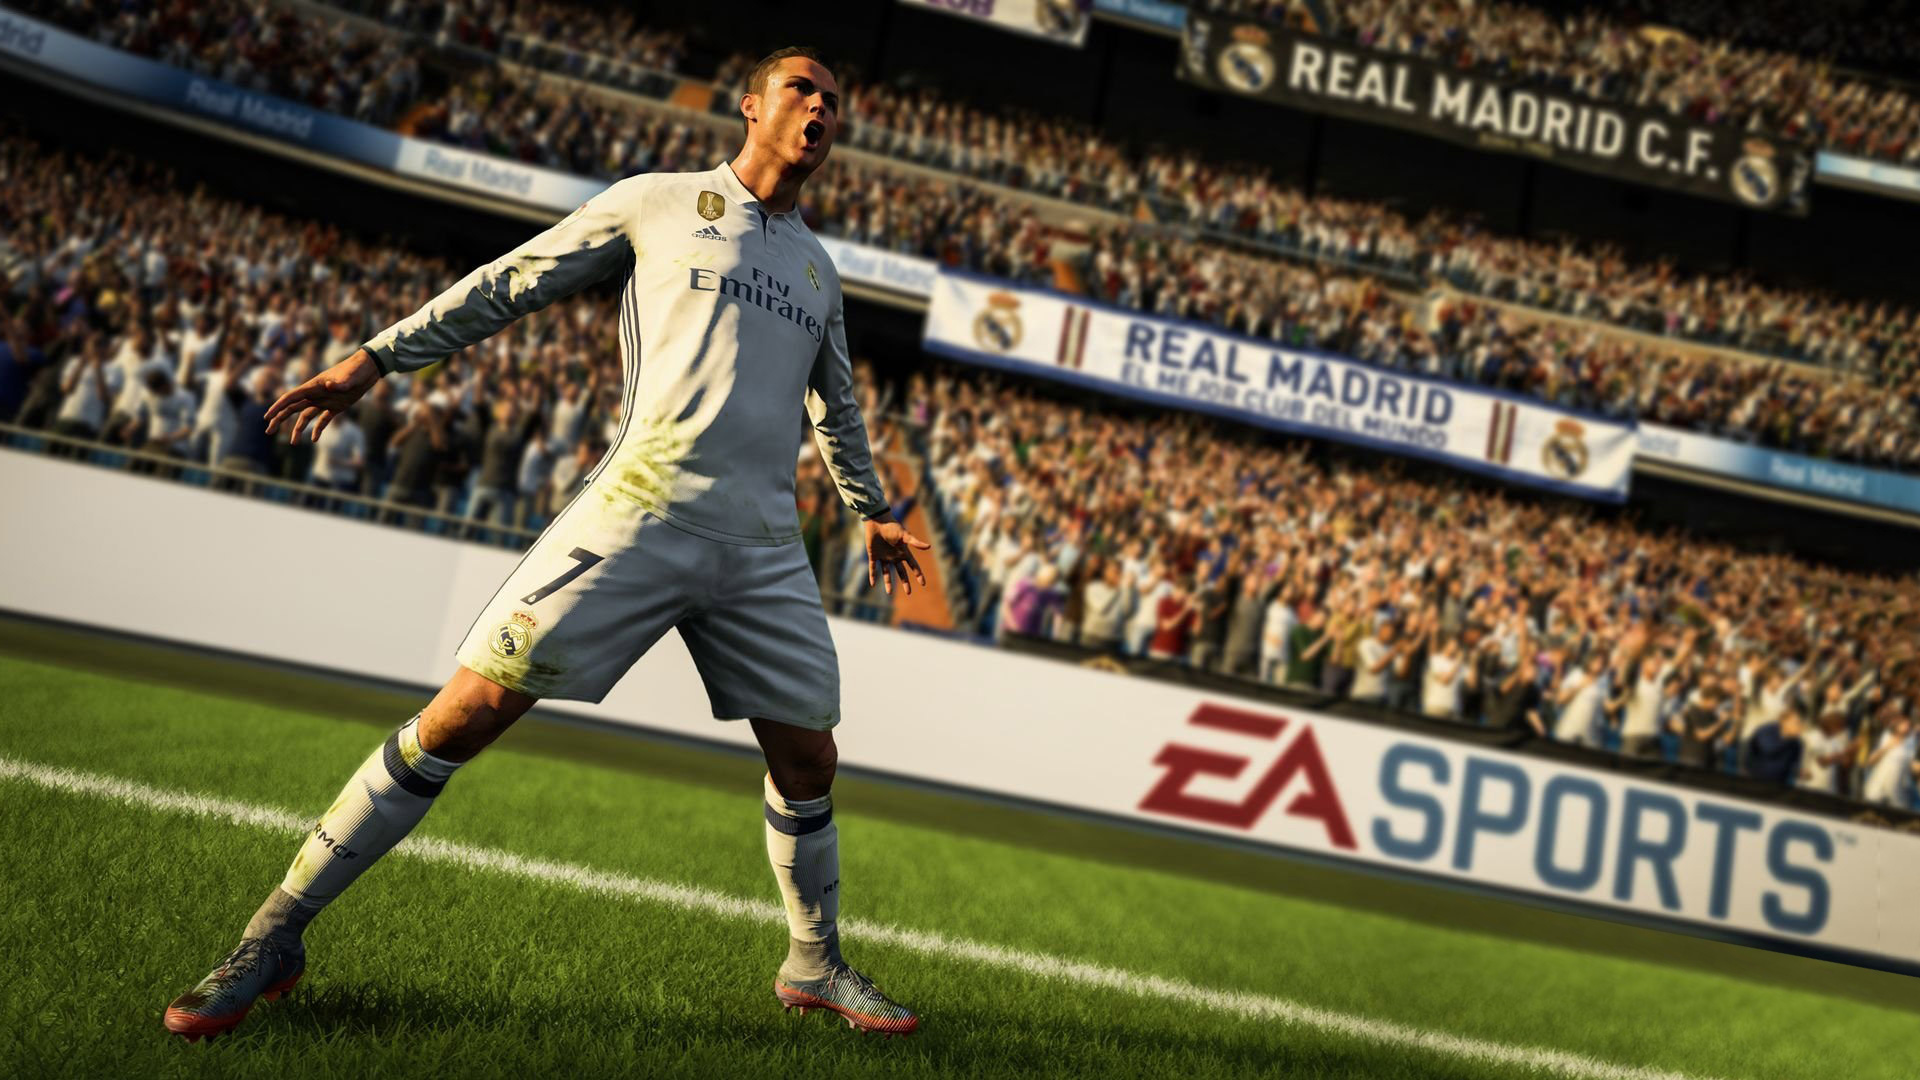 Download Wallpaper  Select The Image Above To View The Wallpaper Full Screen  Press The Playstation  Screen Capture Button On The Controller Fifa